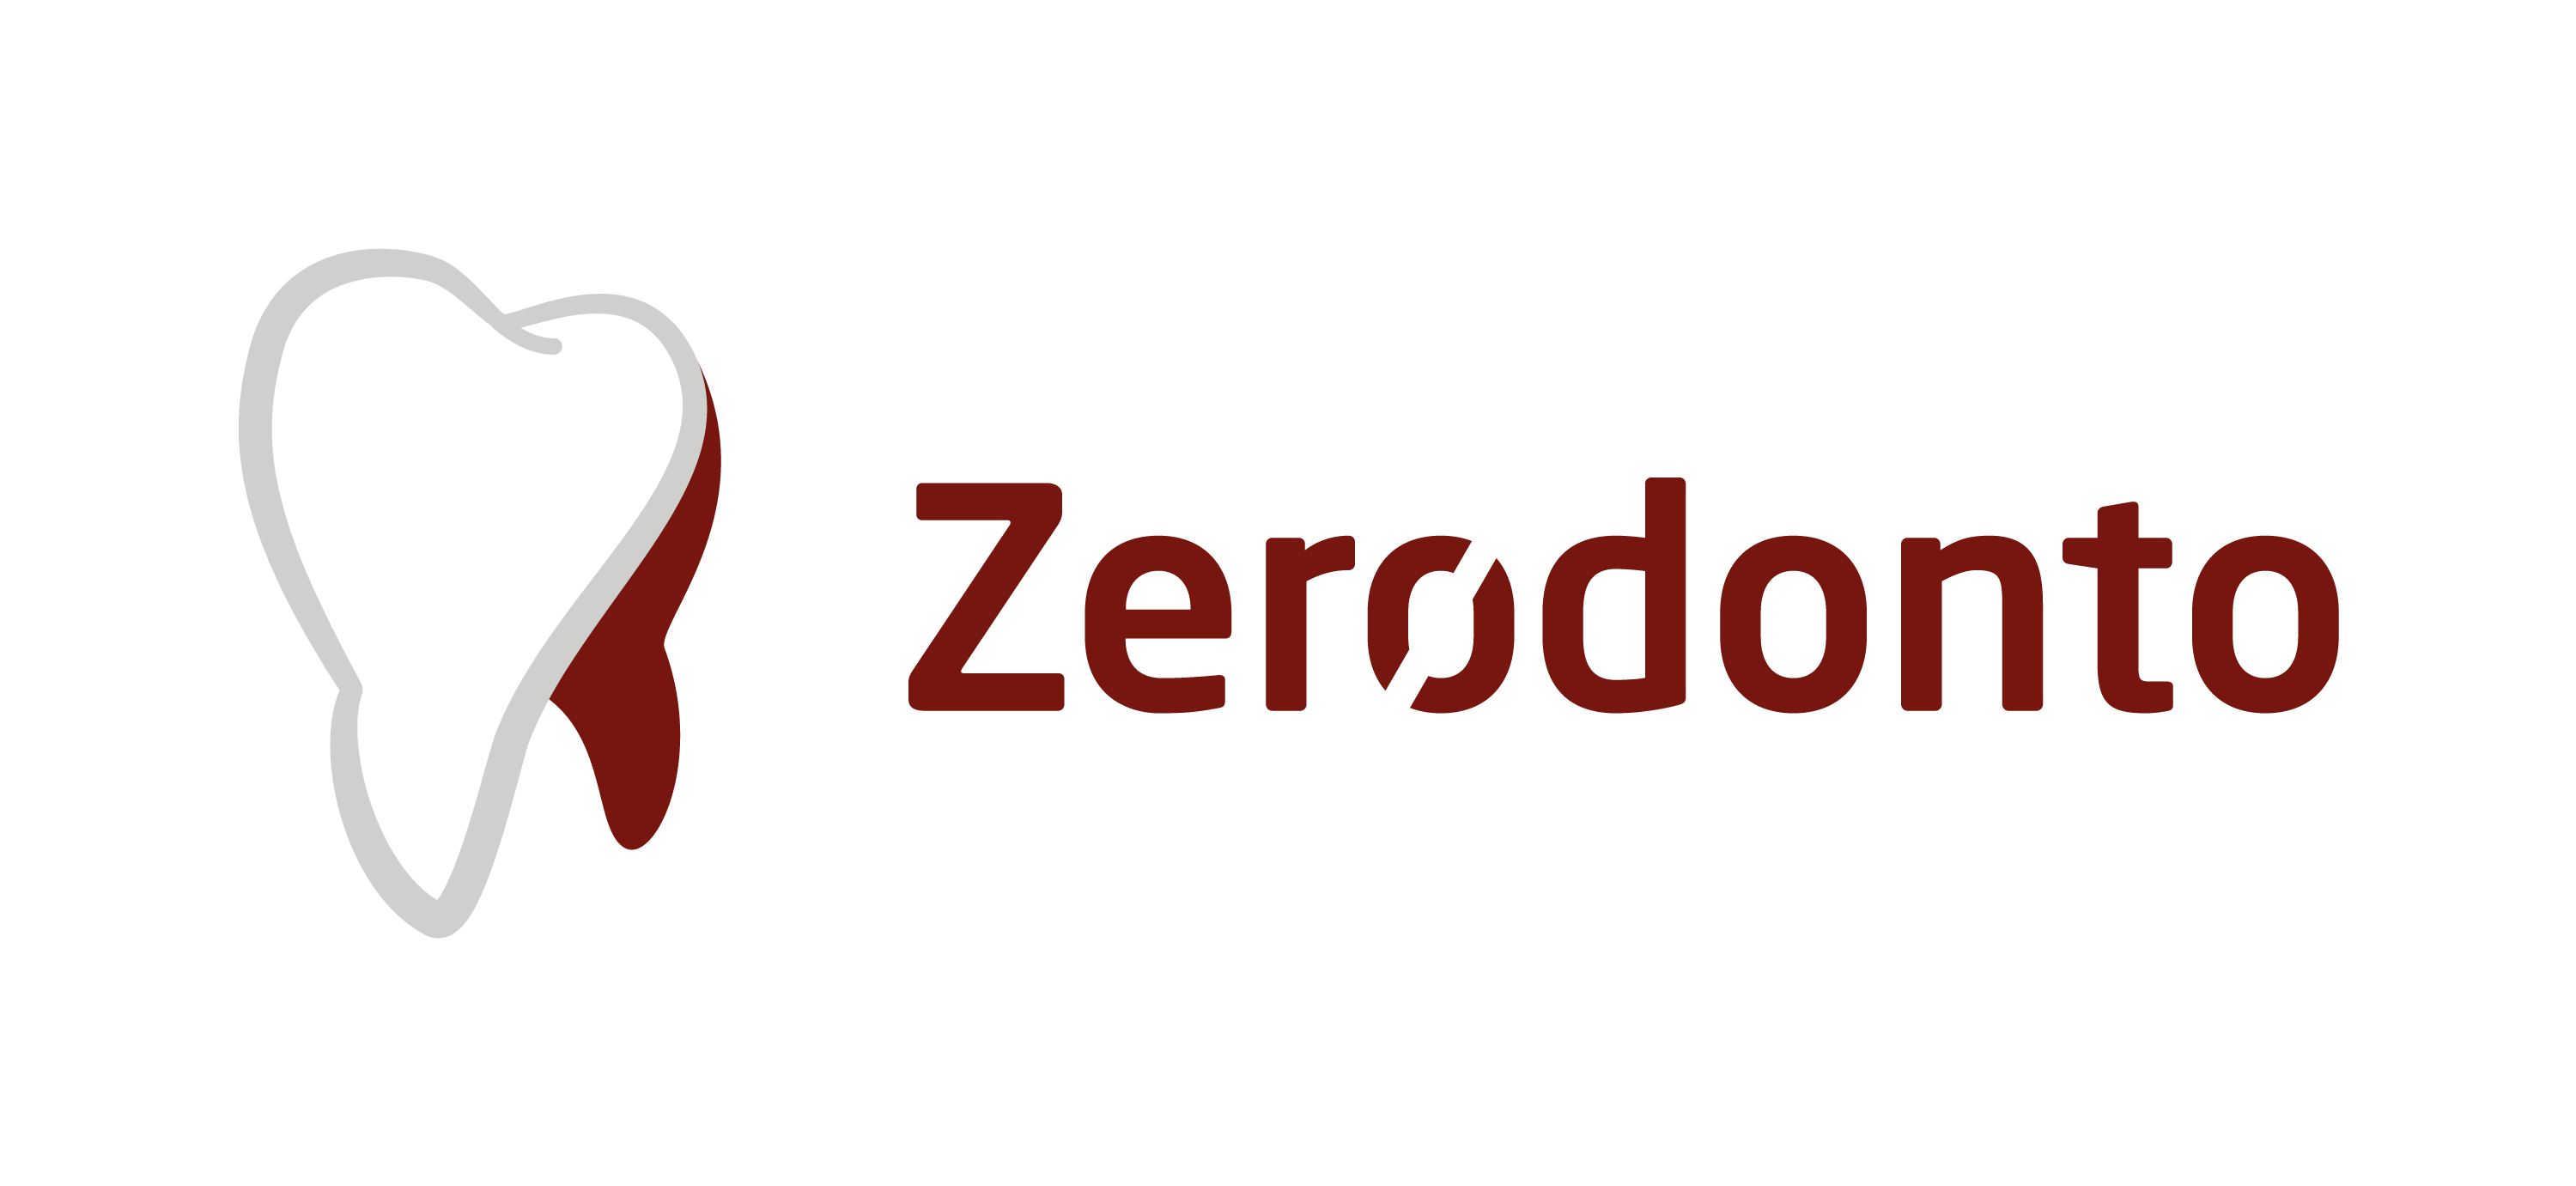 Zerodonto